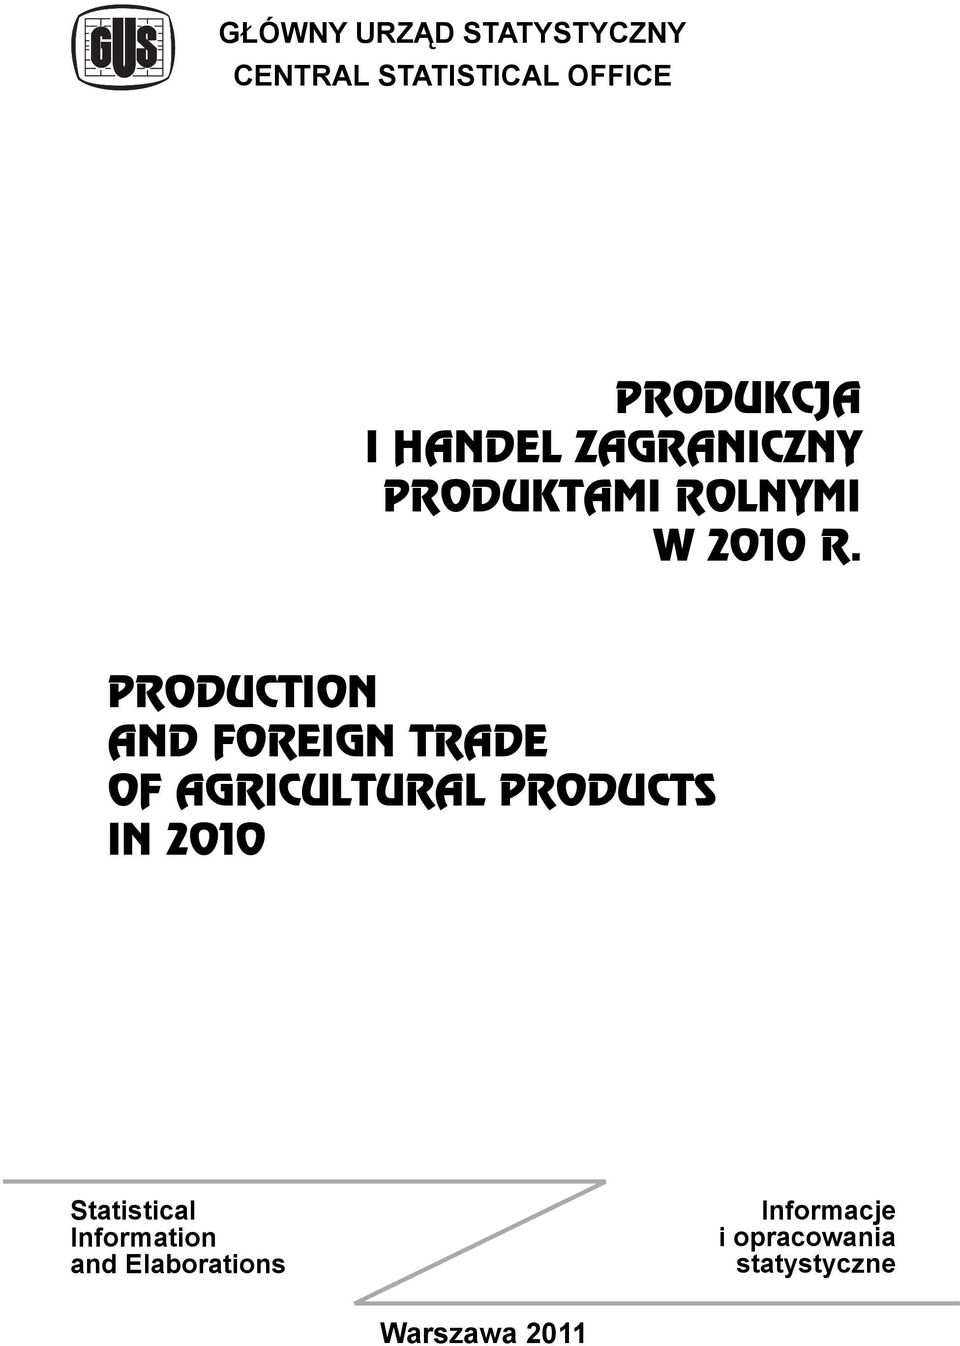 PRODUCTION AND FOREIGN TRADE OF AGRICULTURAL PRODUCTS IN 2010